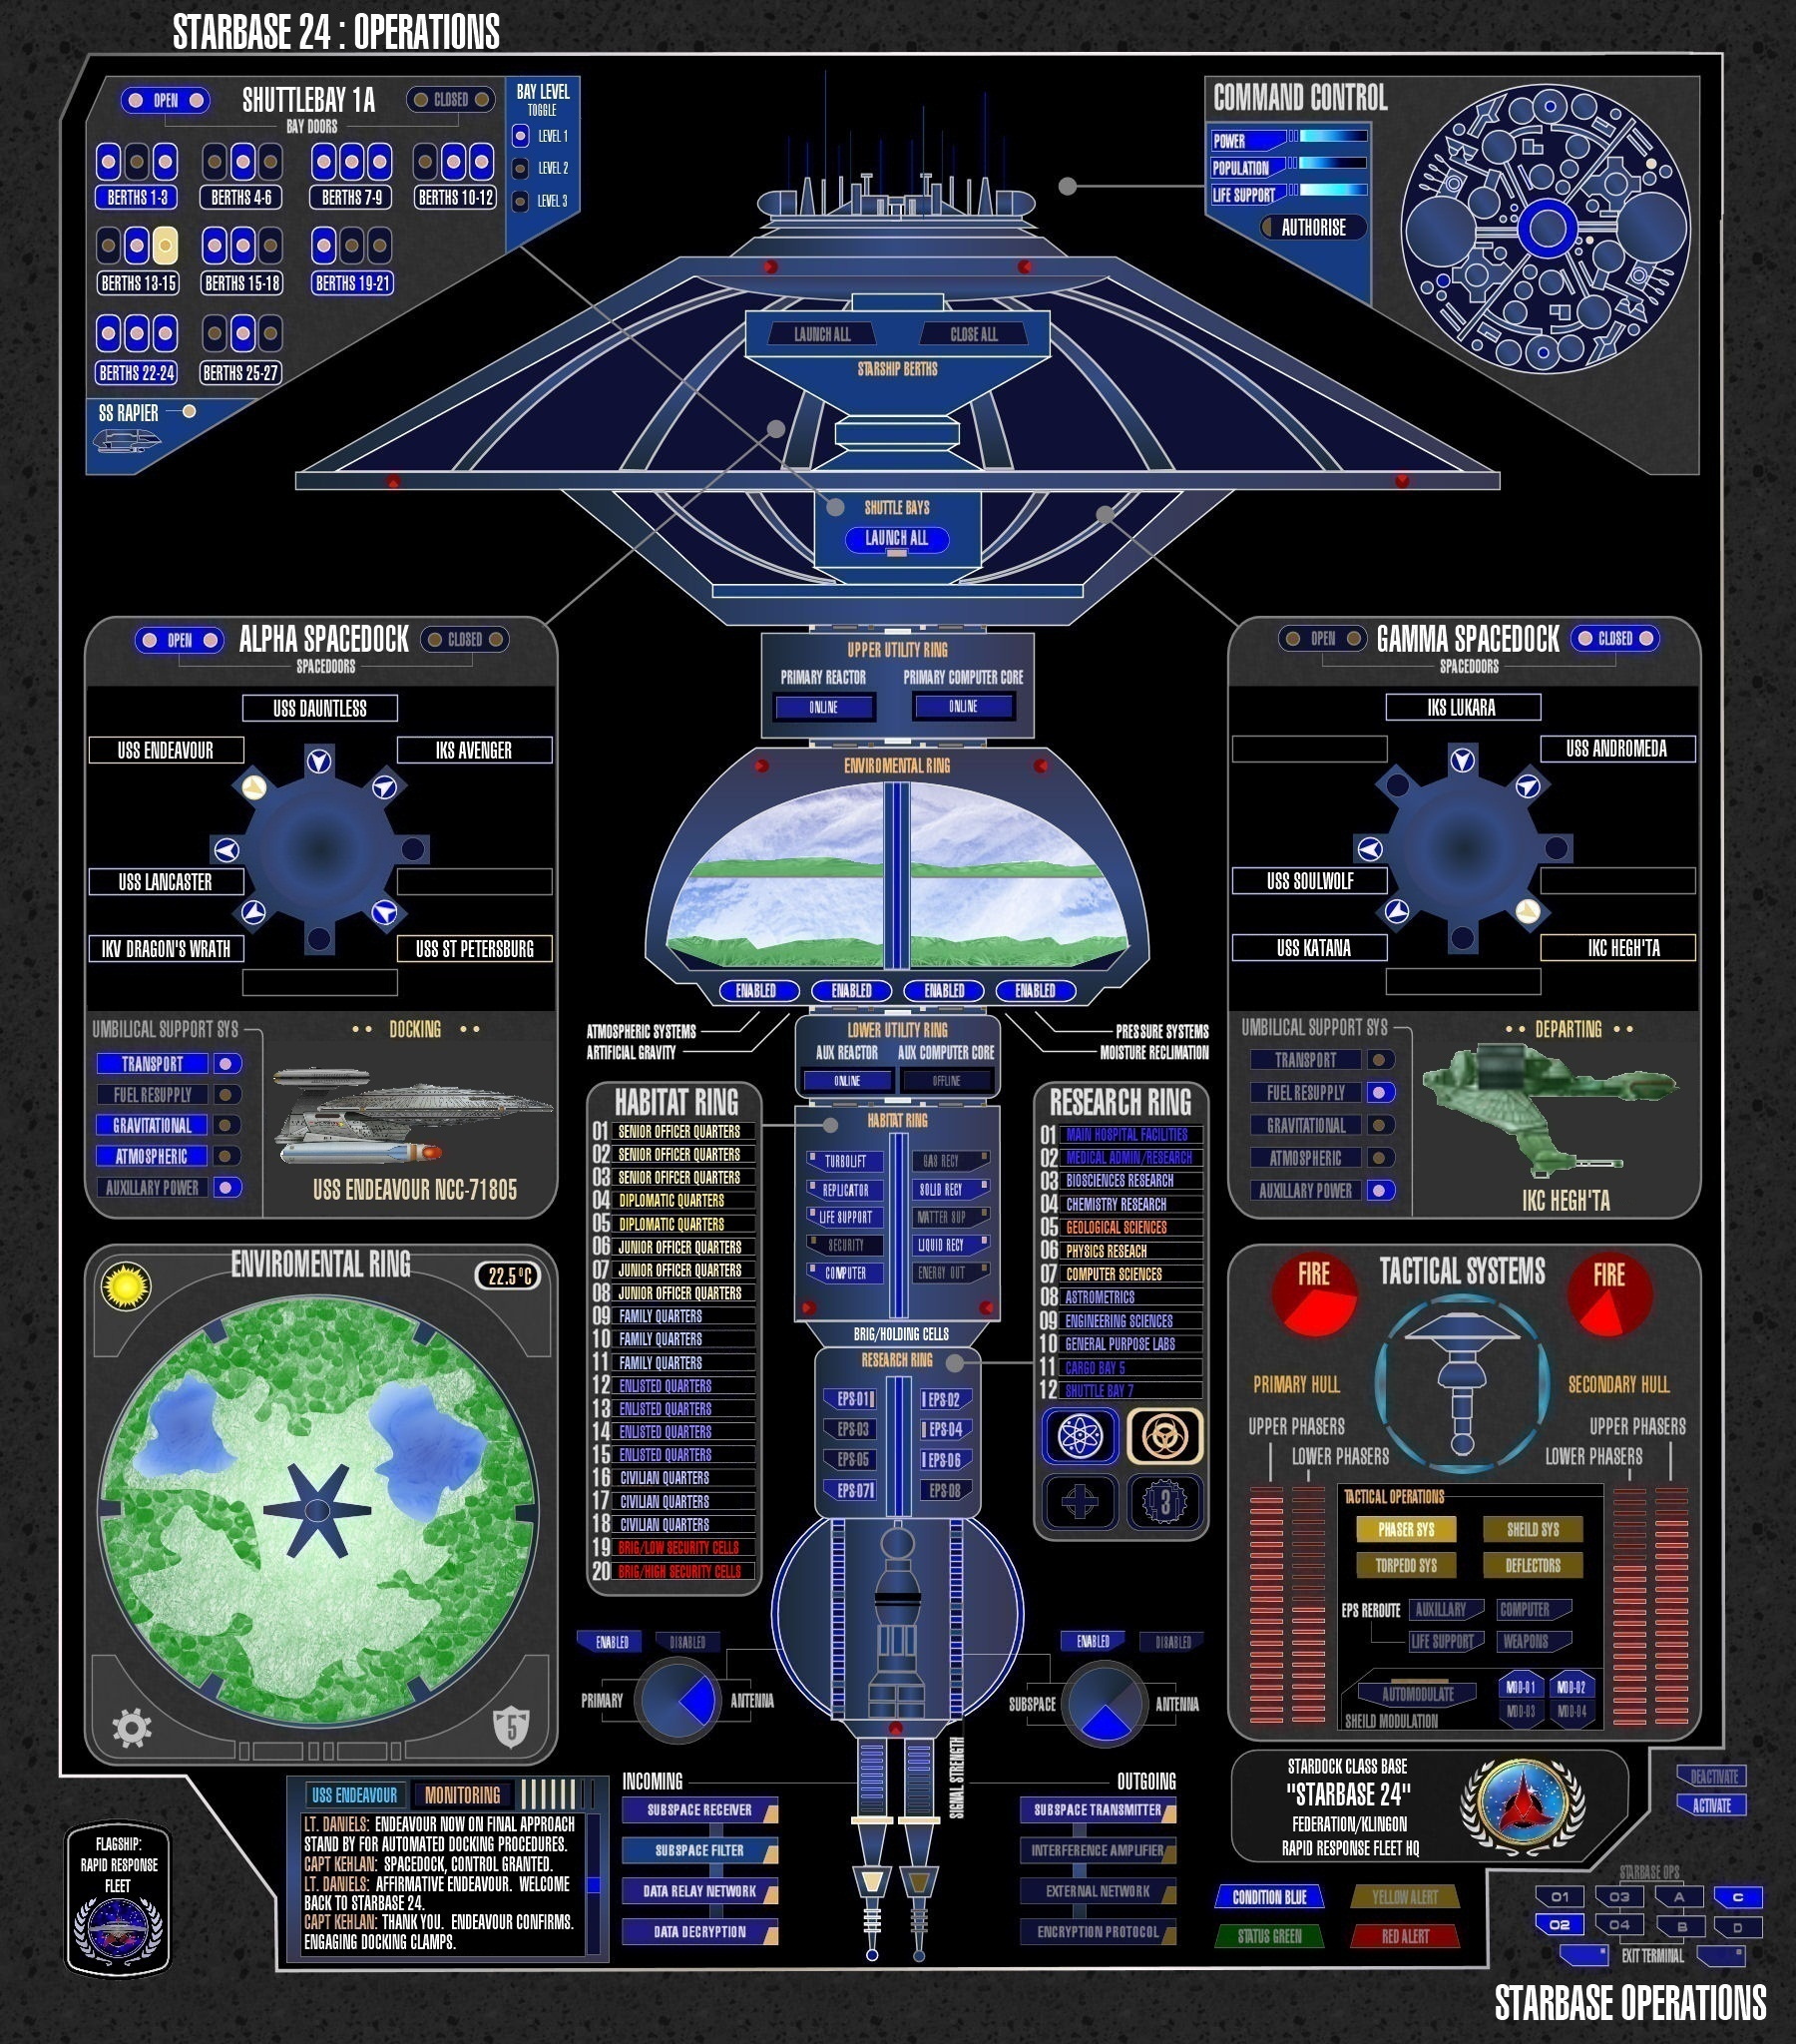 Schematics Starship Schematics on cylon fighter schematics, starbase schematics, mecha schematics, space schematics, train schematics, macross sdf-1 schematics,